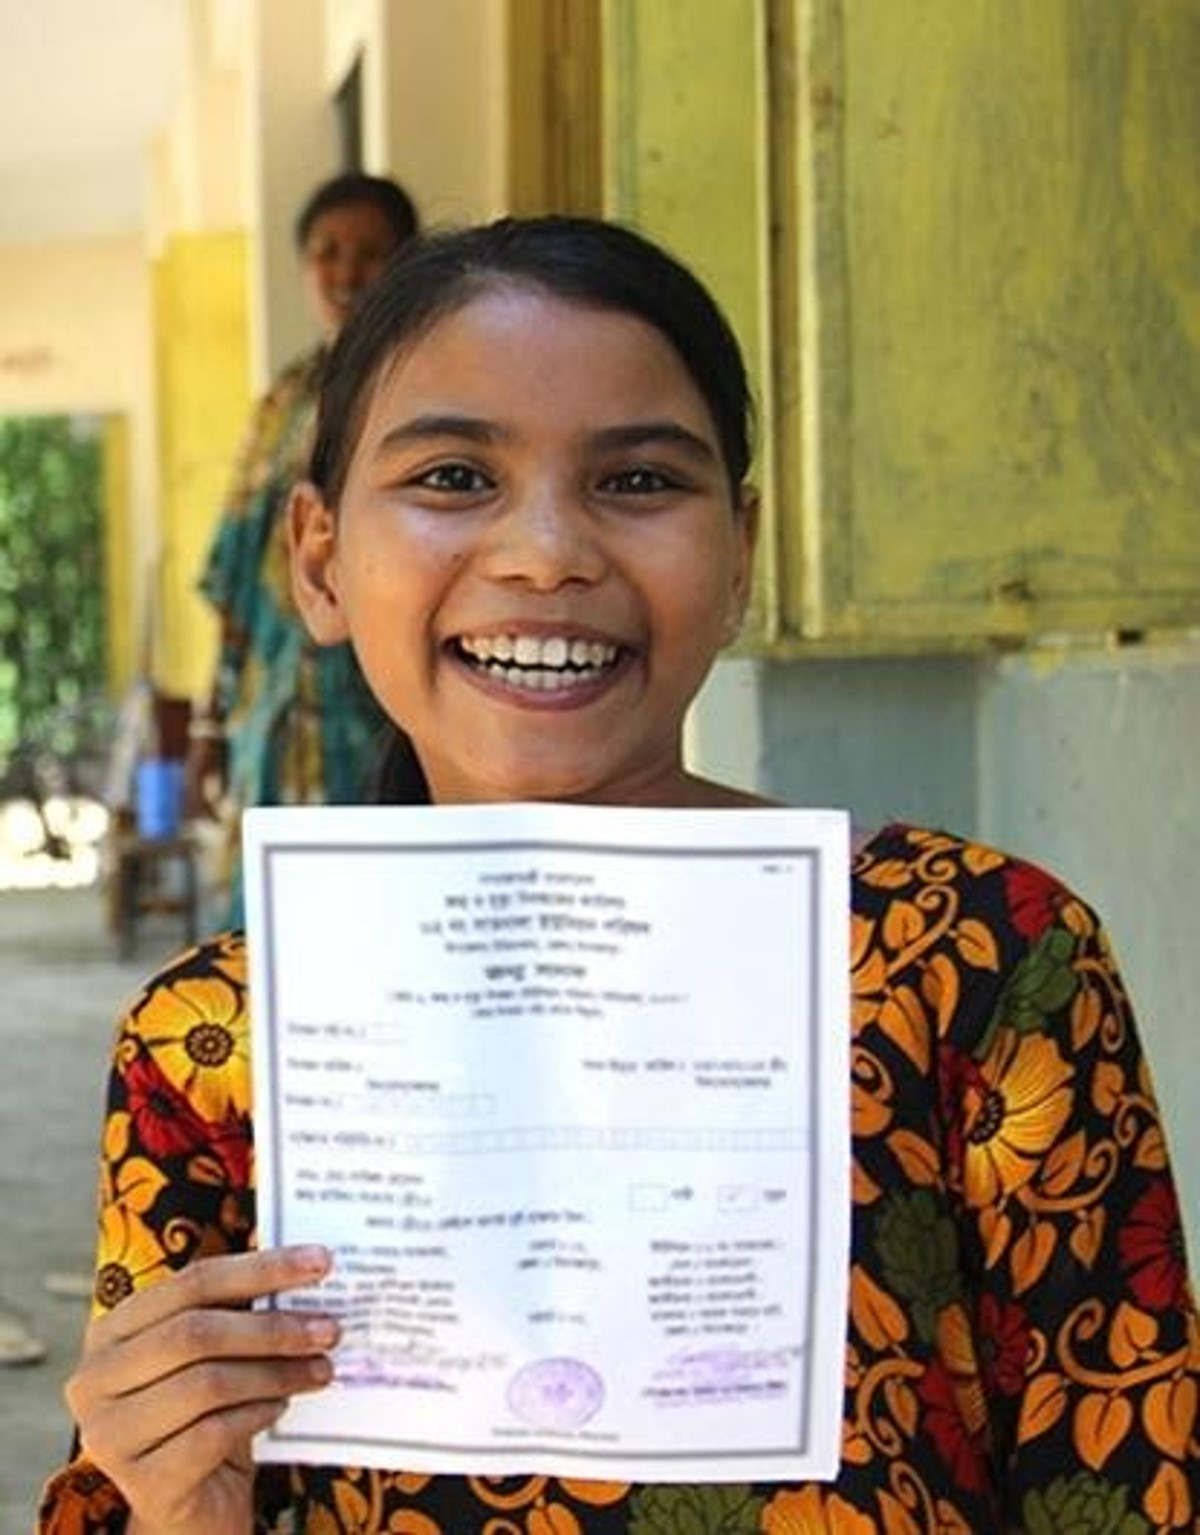 A girl smiles after receiving her birth certificate in a program run by Plan International. Note: all infants born in Canada receive birth certificates. Credits to: Plan International [149]